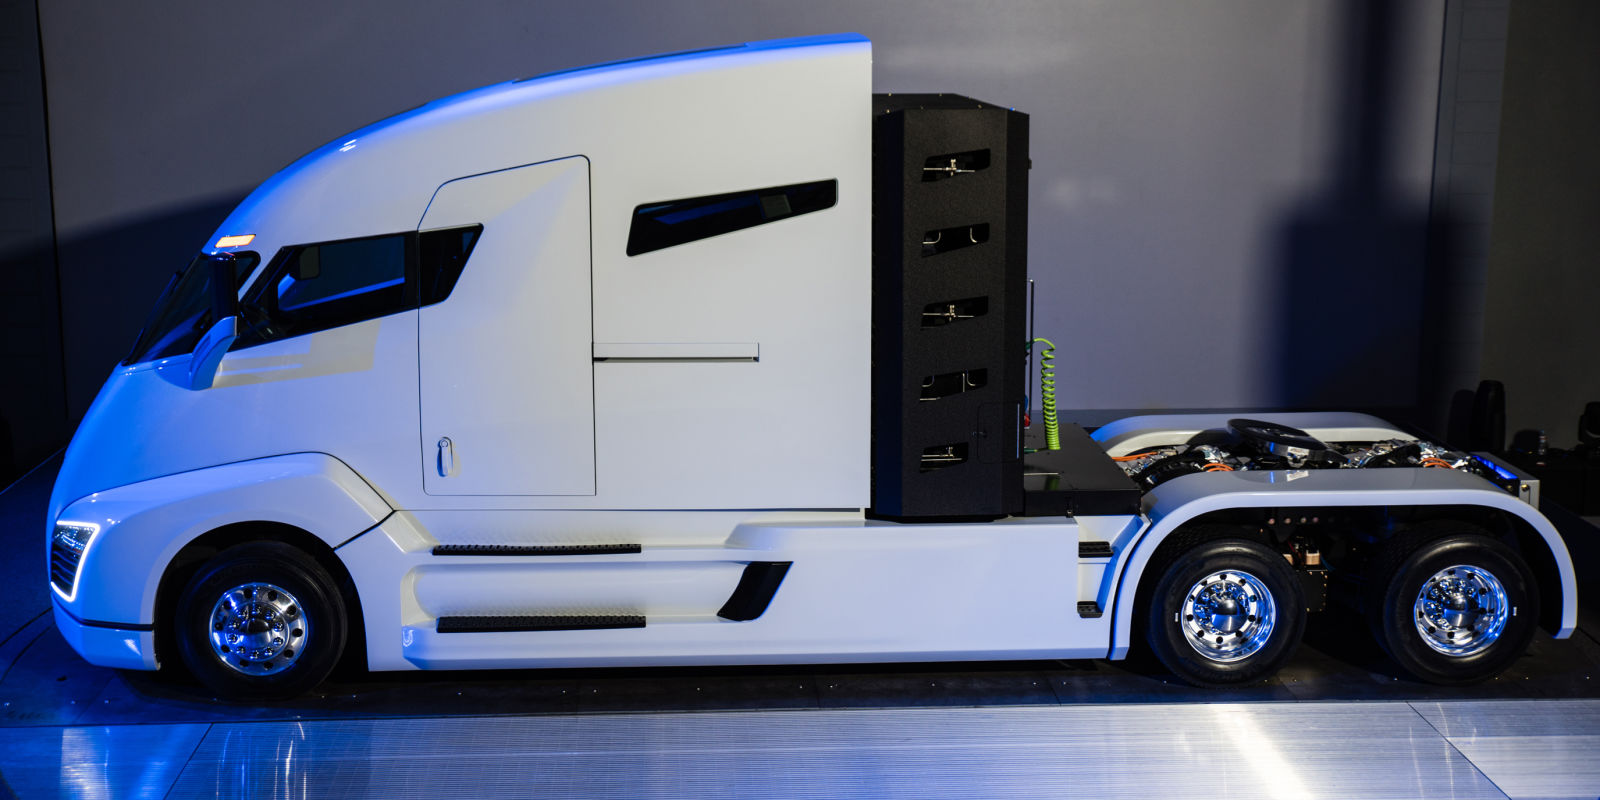 Doft | How Disruptive Will Uber Freight be for Trucking?